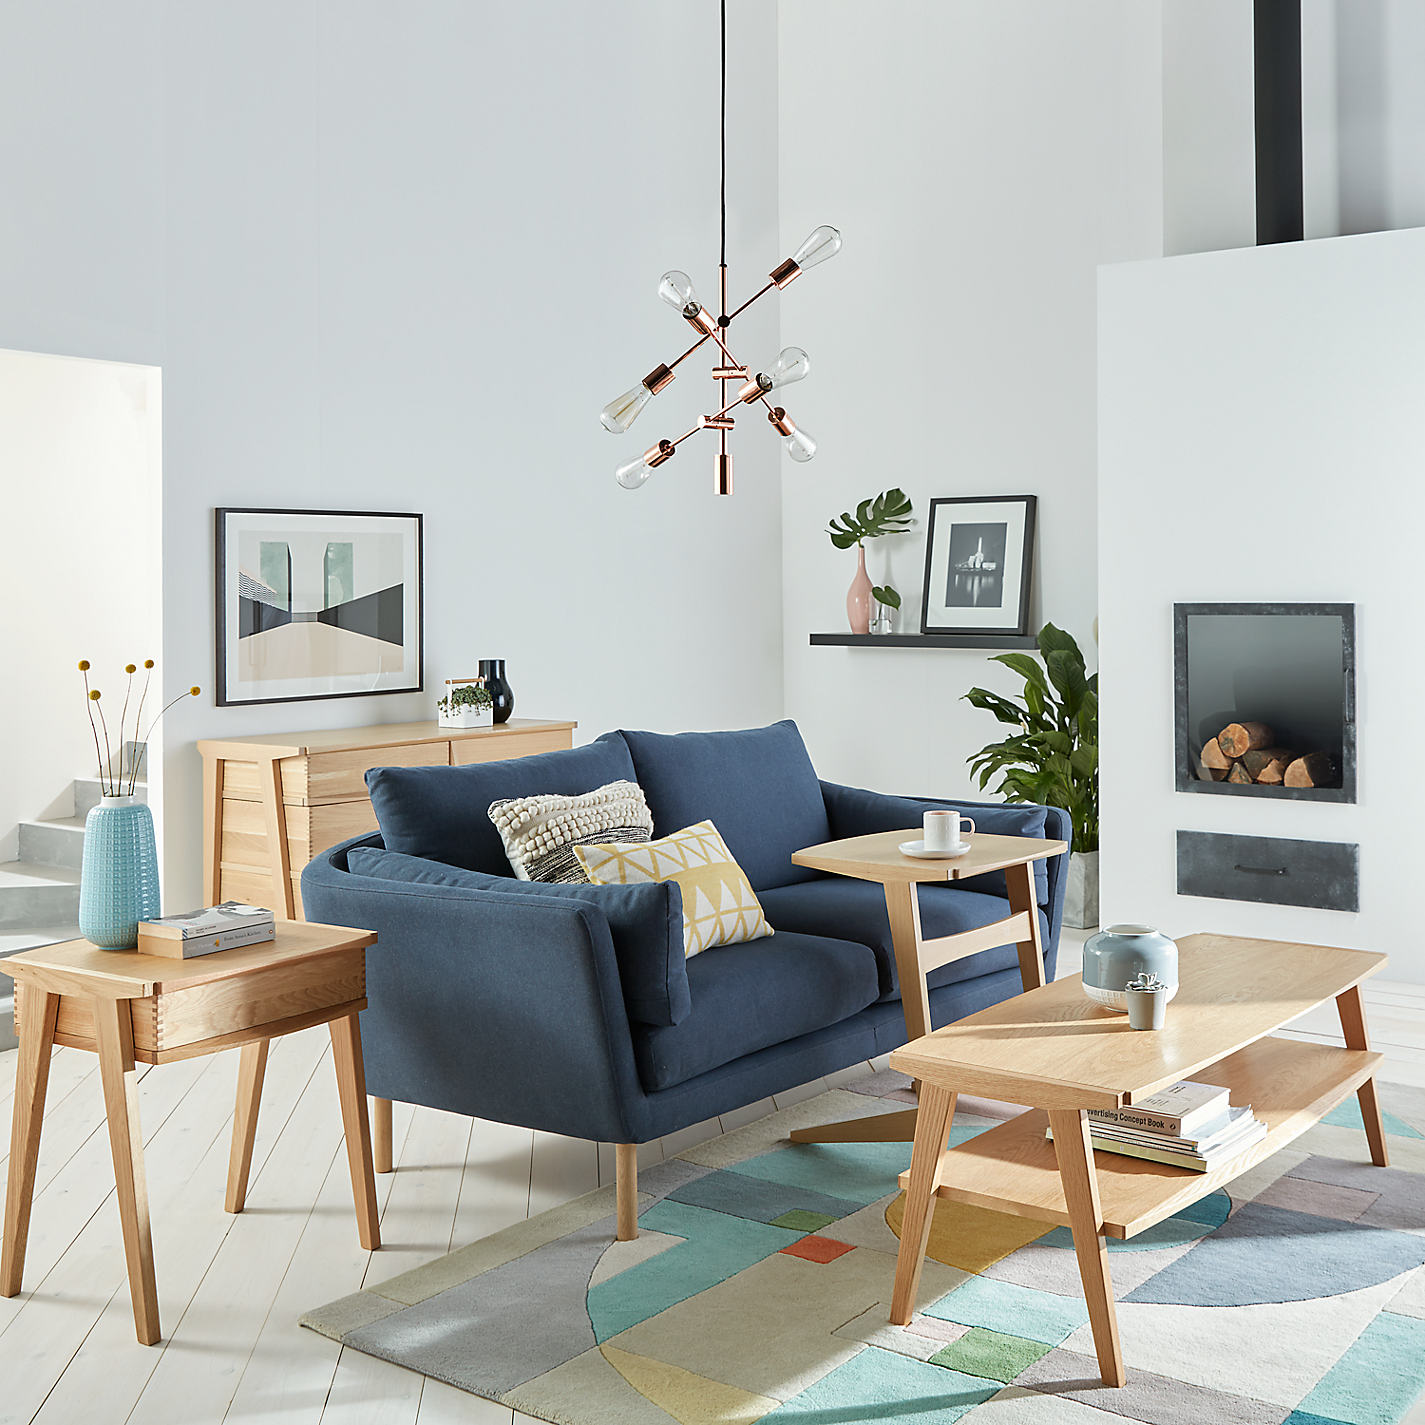 john lewis living room lewis living room ideas peenmedia 17632